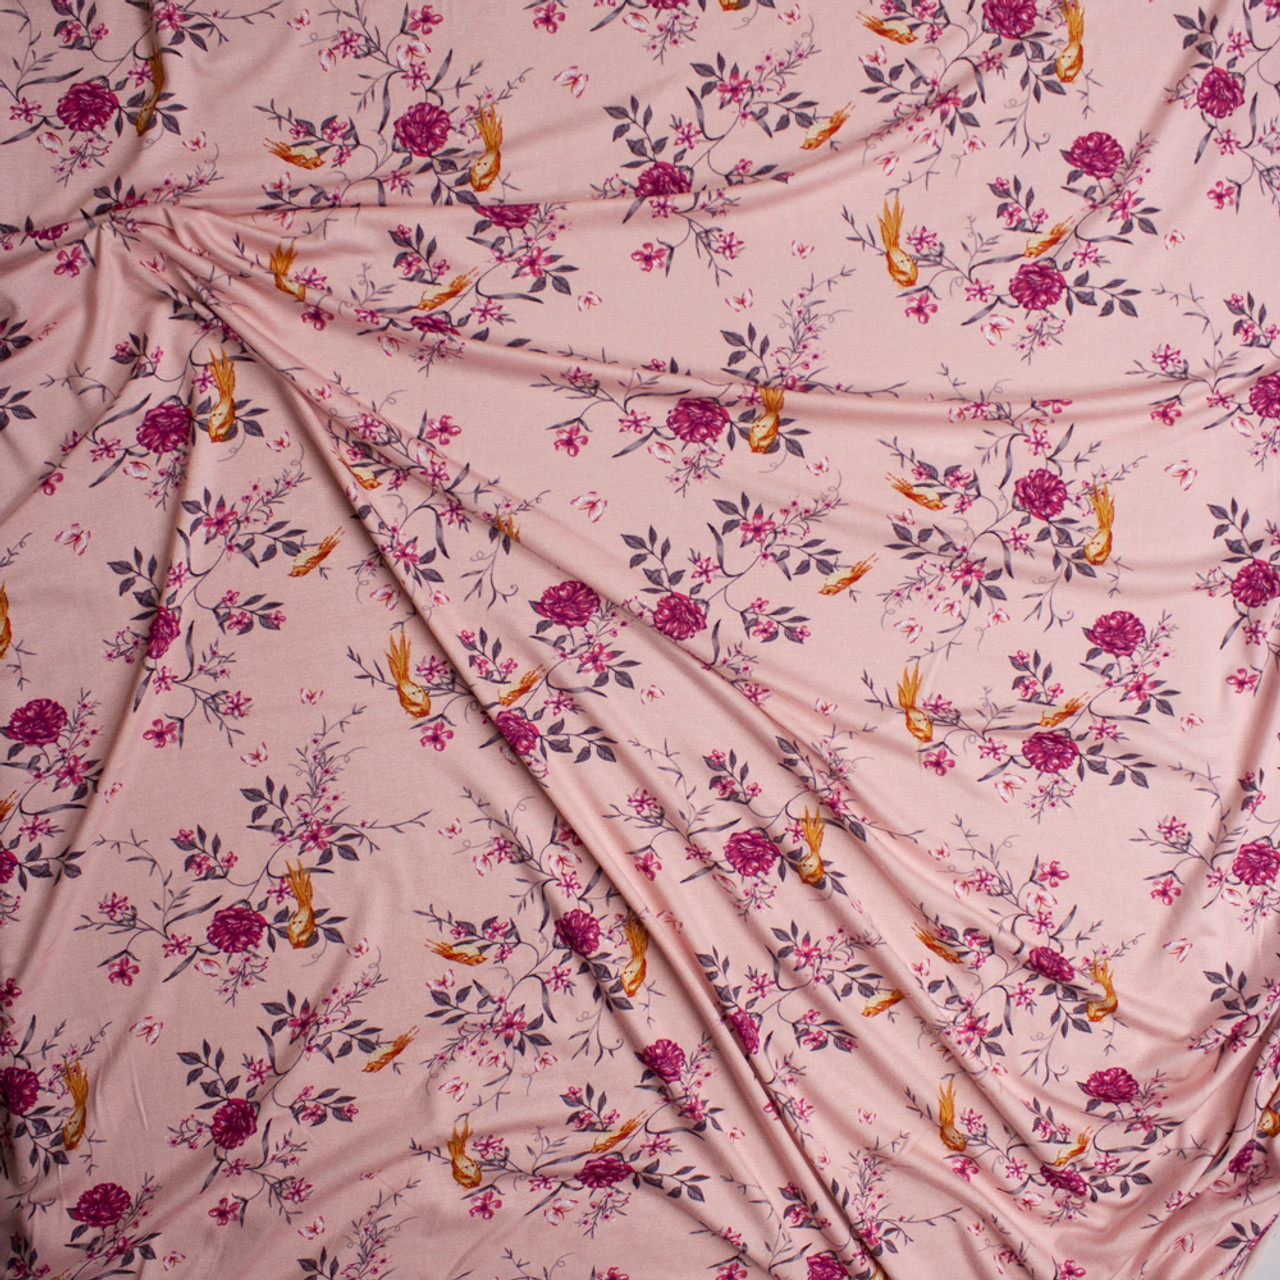 44fb451b8b9 ... Yellow and Purple Floral on Pink Lightweight Stretch Rayon Jersey Knit  Fabric By The Yard -